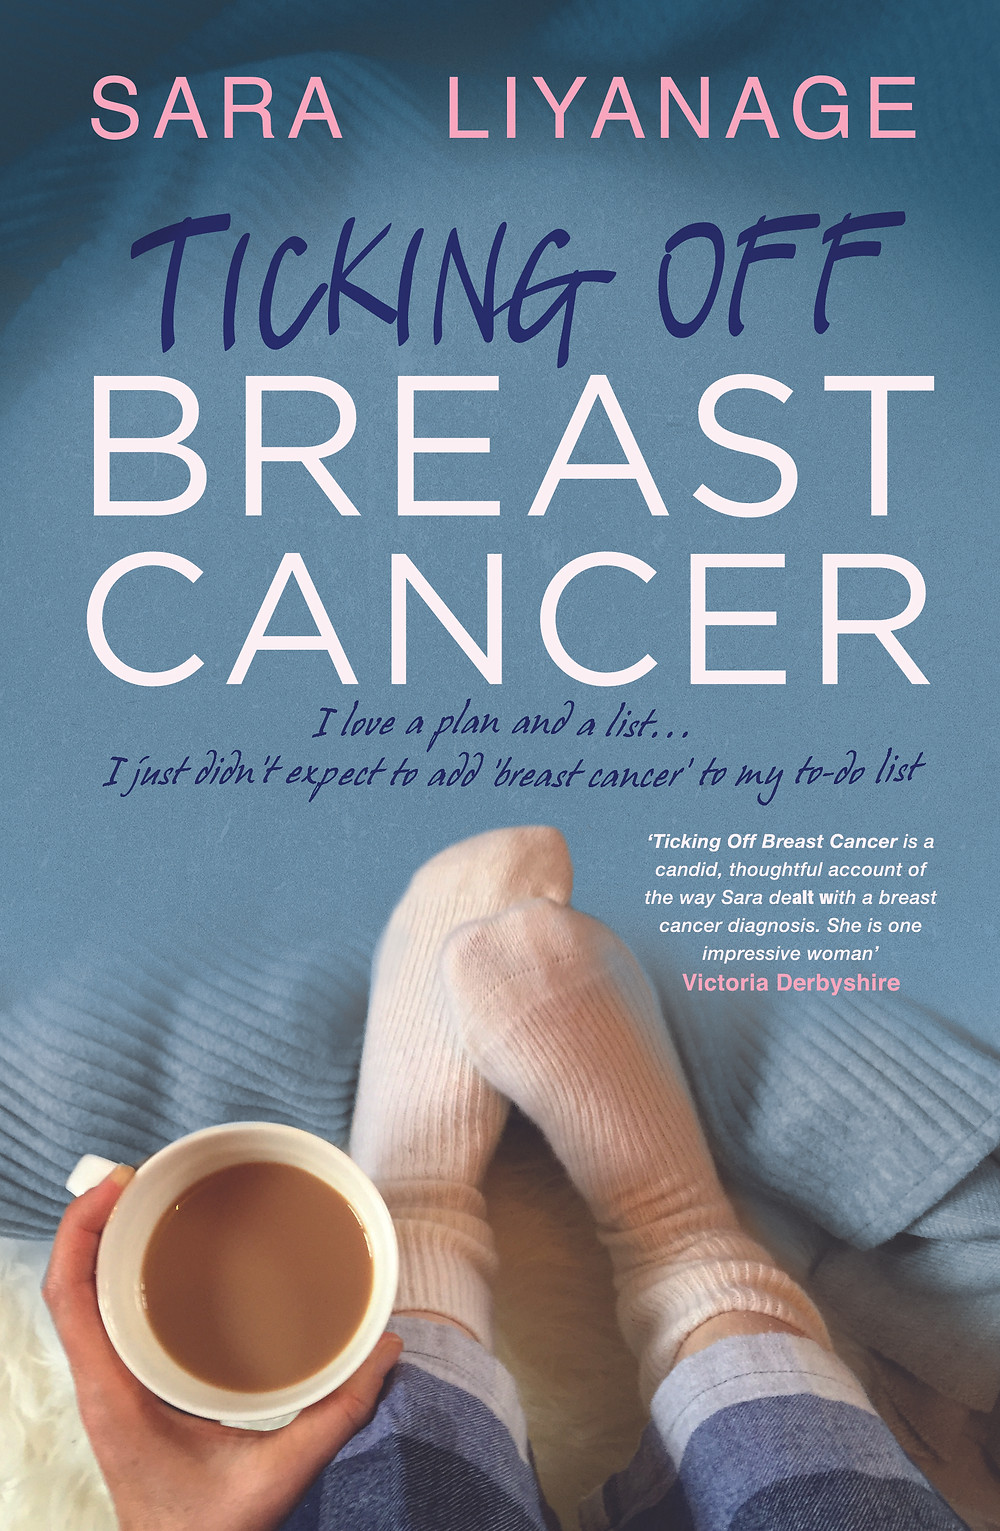 Ticking off breast cancer book cover